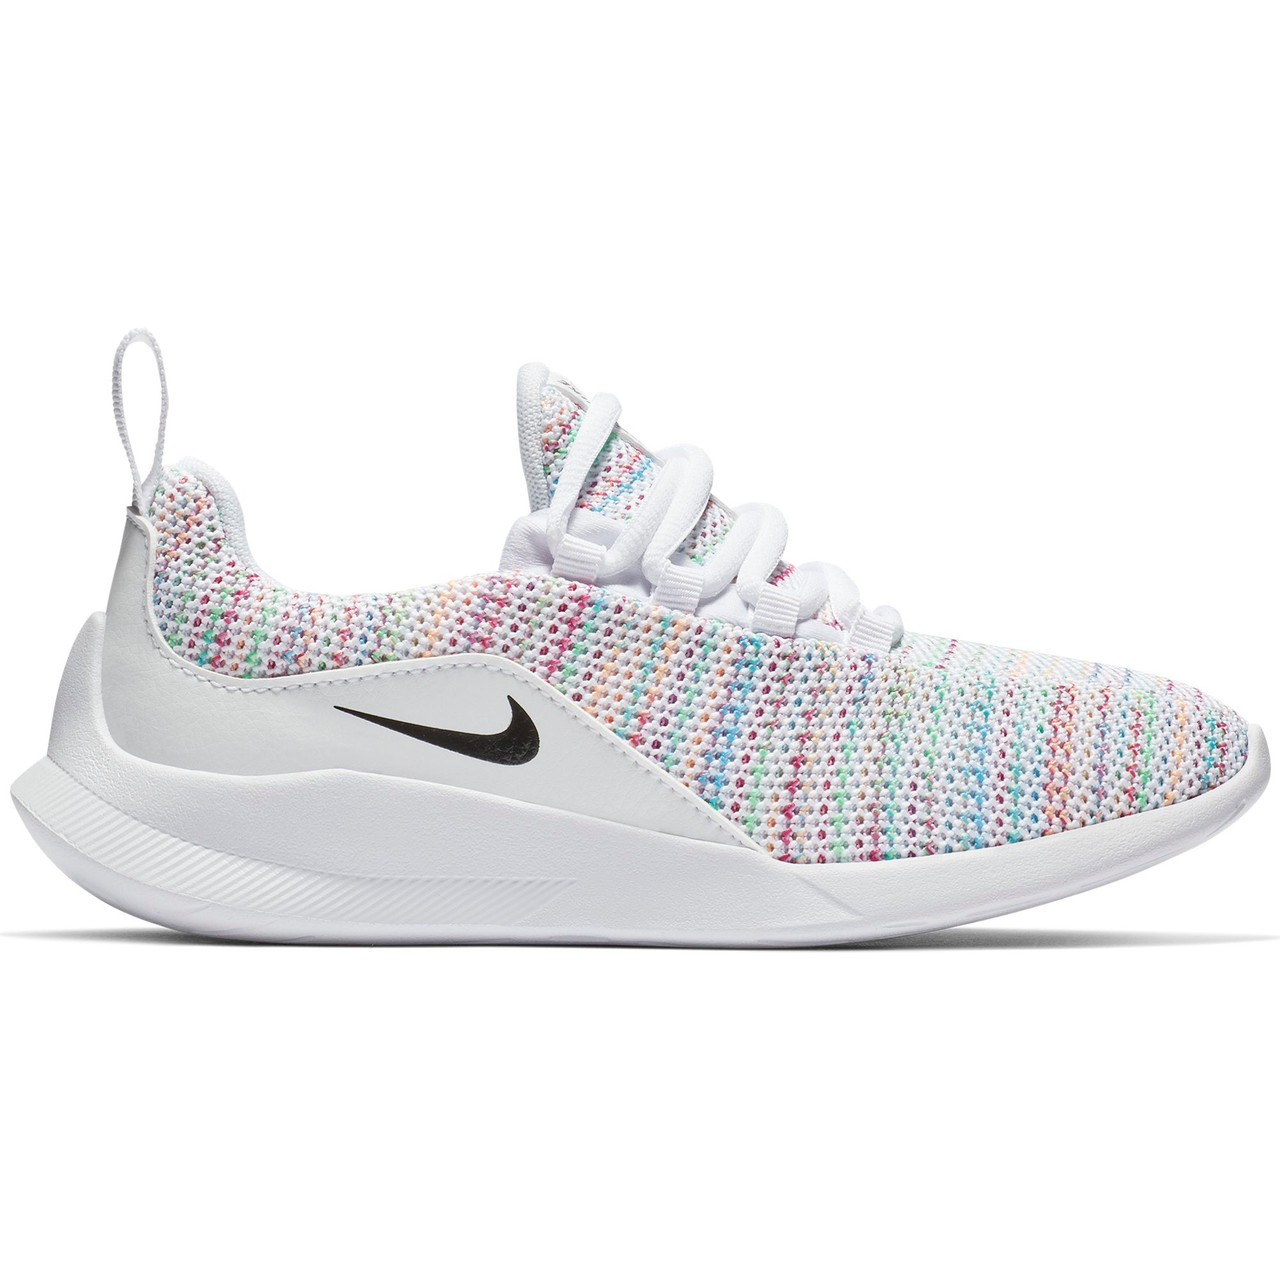 Exención Cumbre tubo  Girl's Nike Viale Space Dye (PS) Pre School Shoe - Sieverts ...